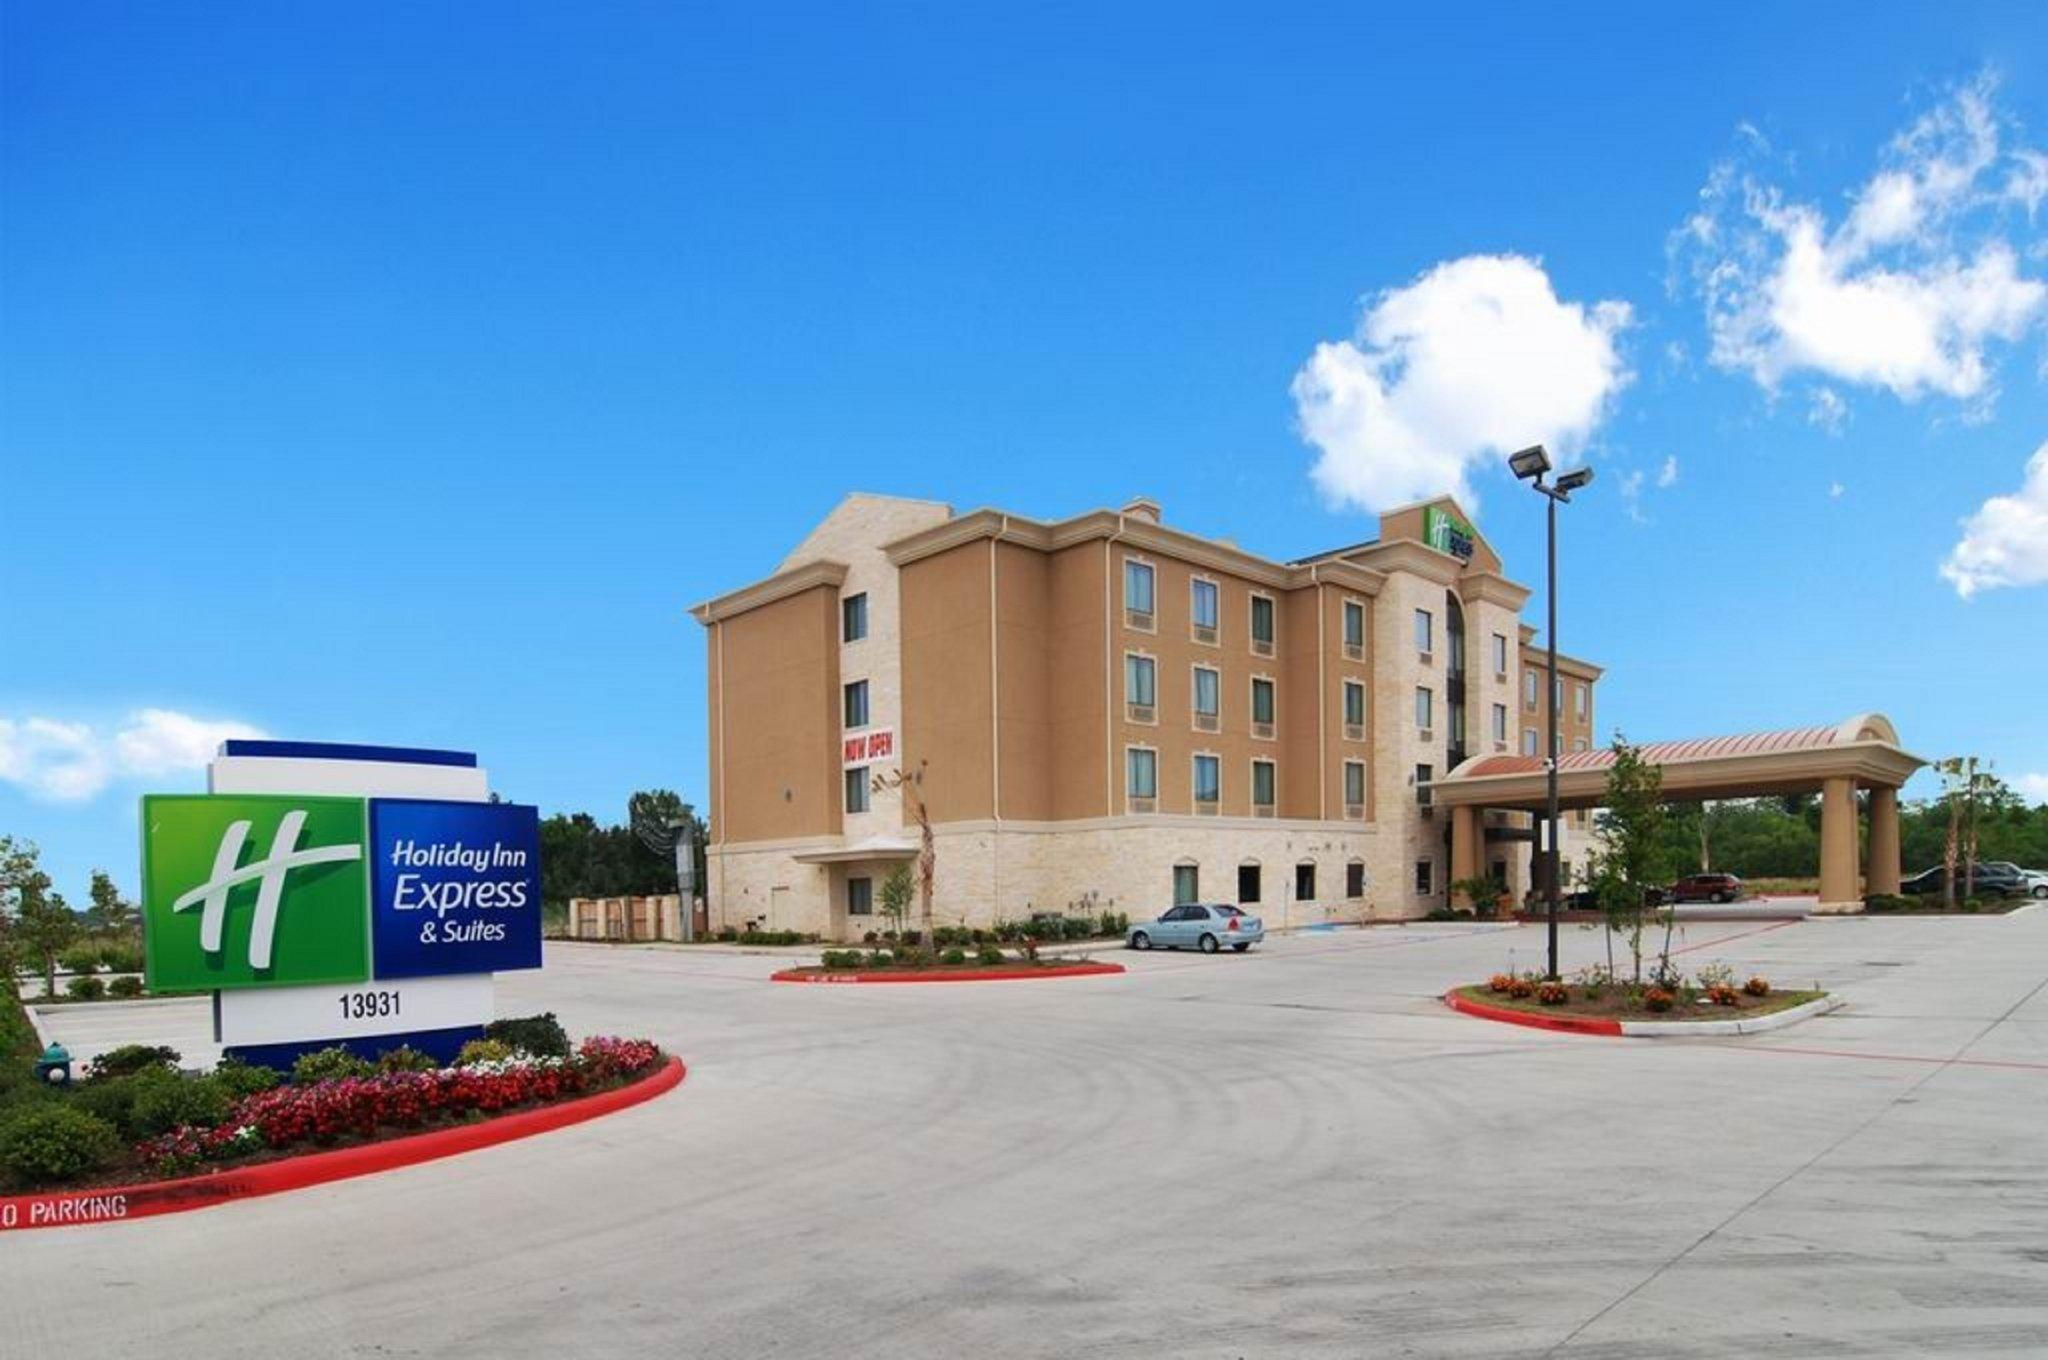 Holiday Inn Express Houston South